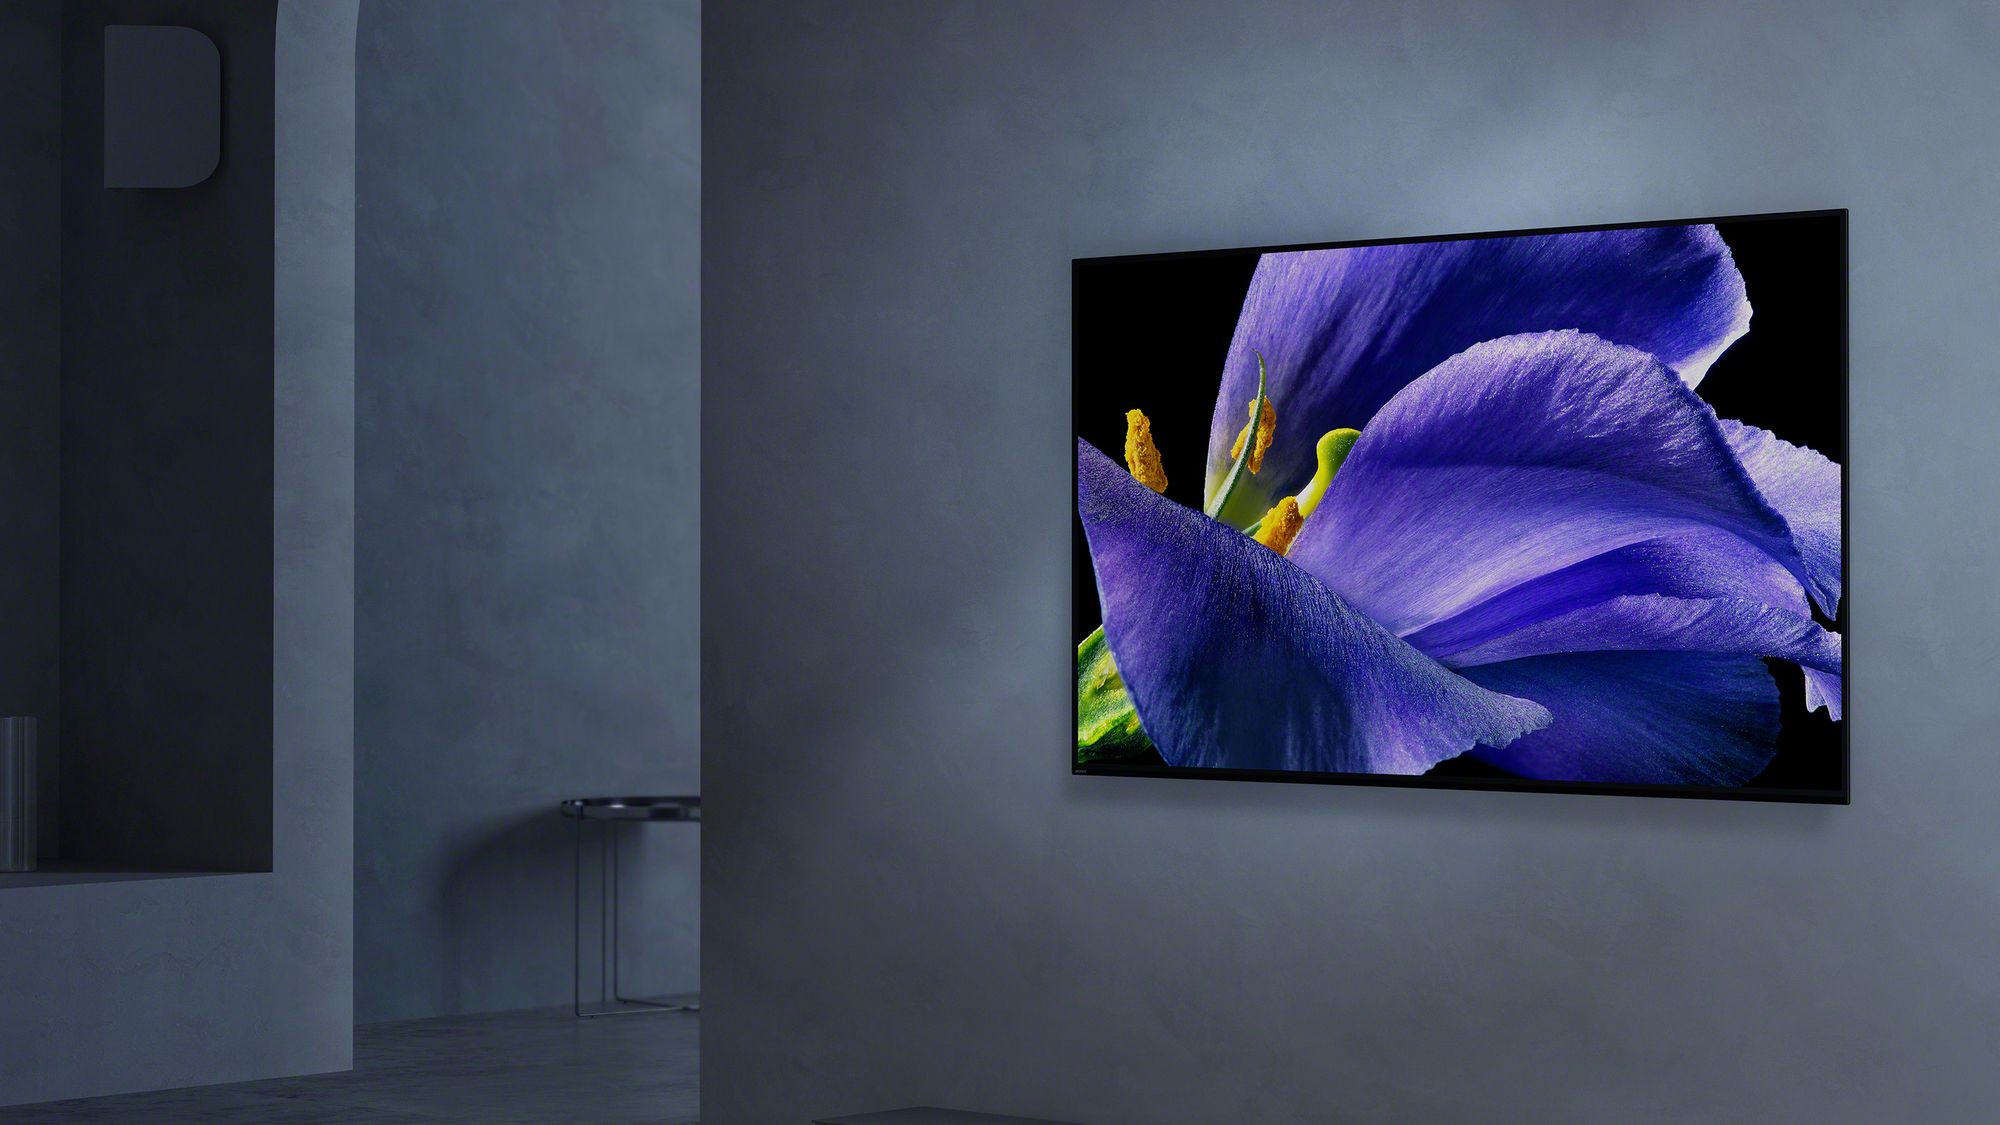 Top 5 UltraHD 4K TVs over 75-Inches